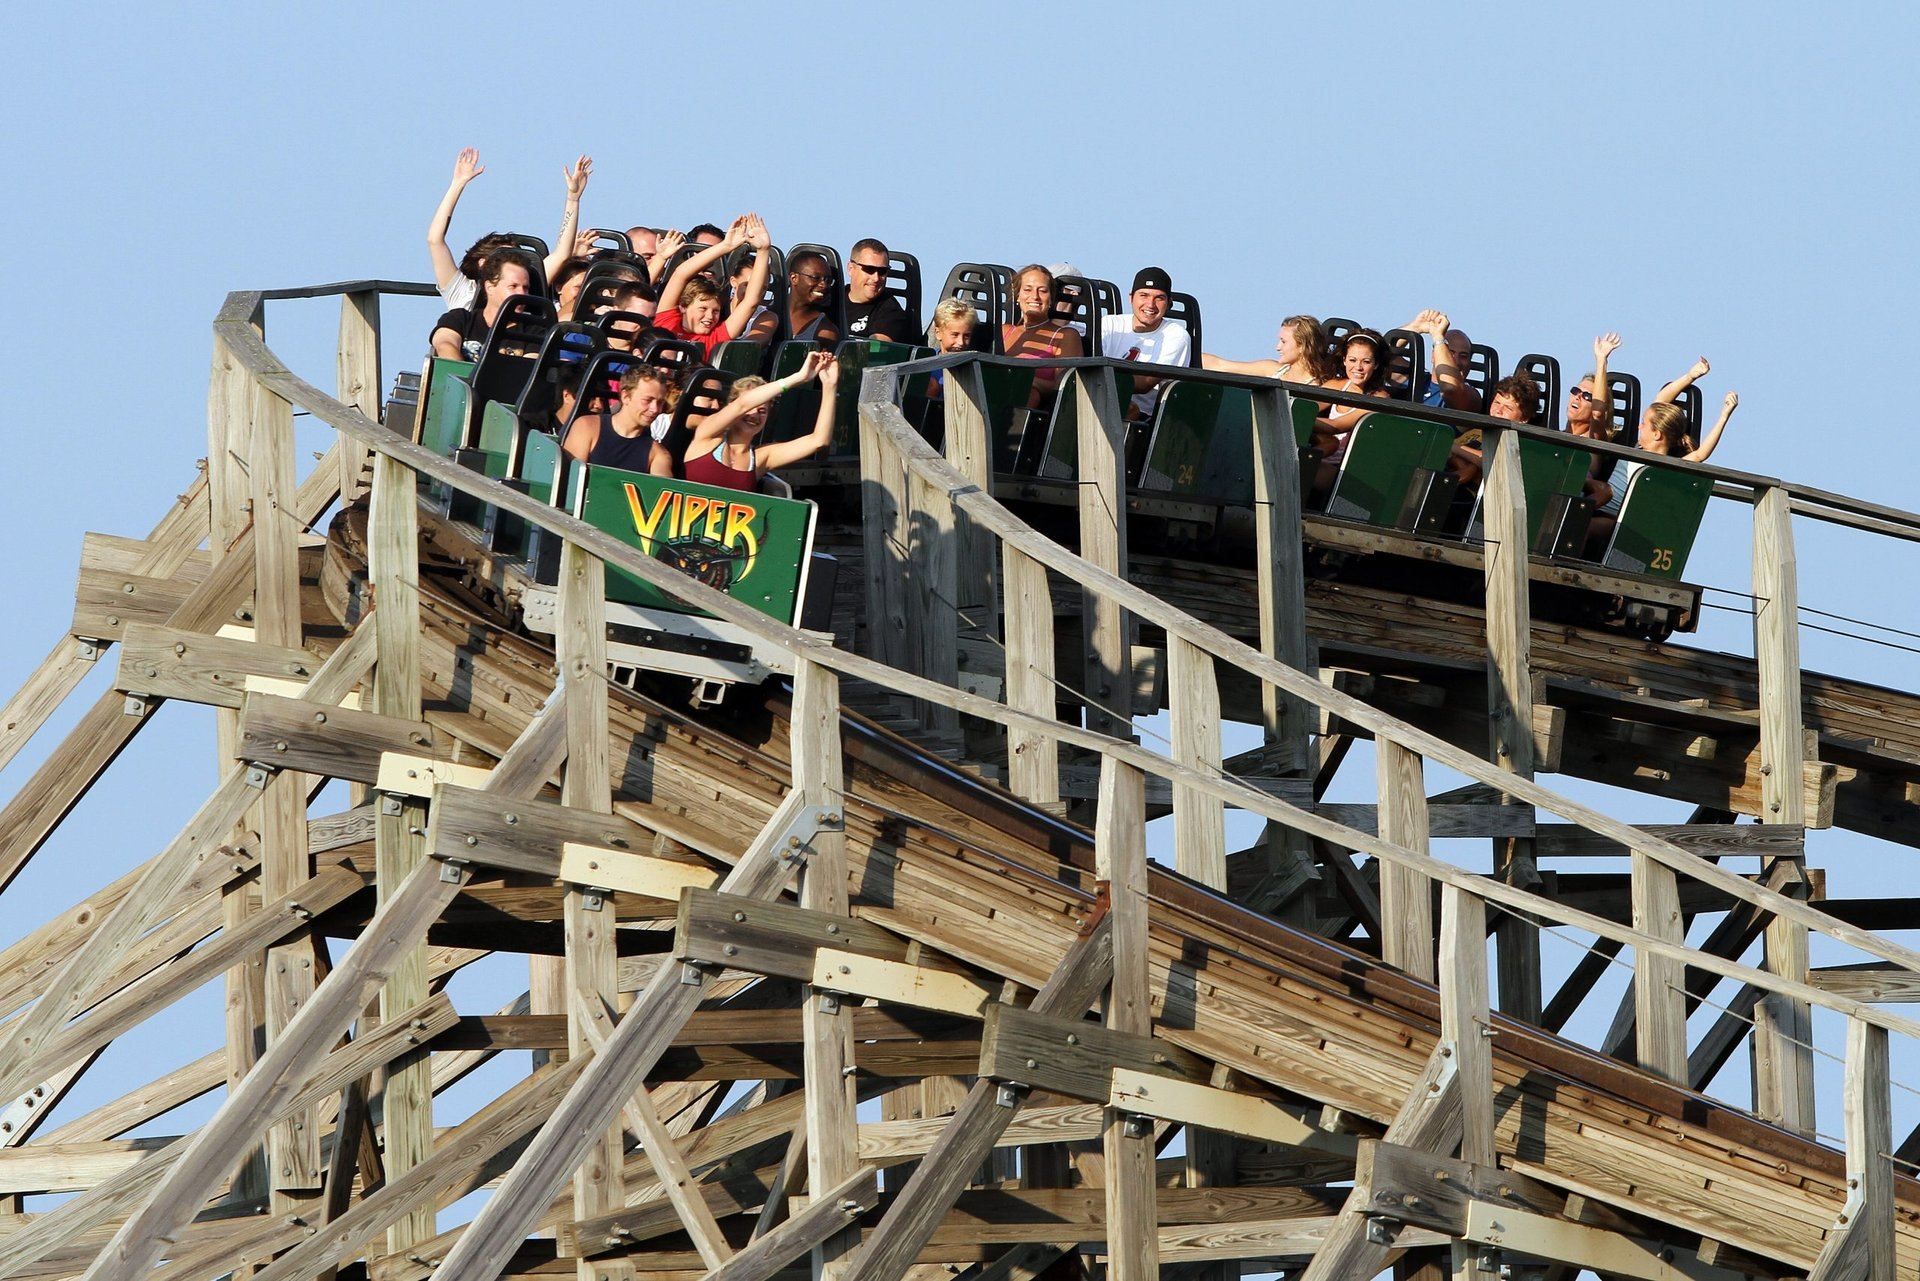 Guests with their hands in the air riding Viper at Six Flags